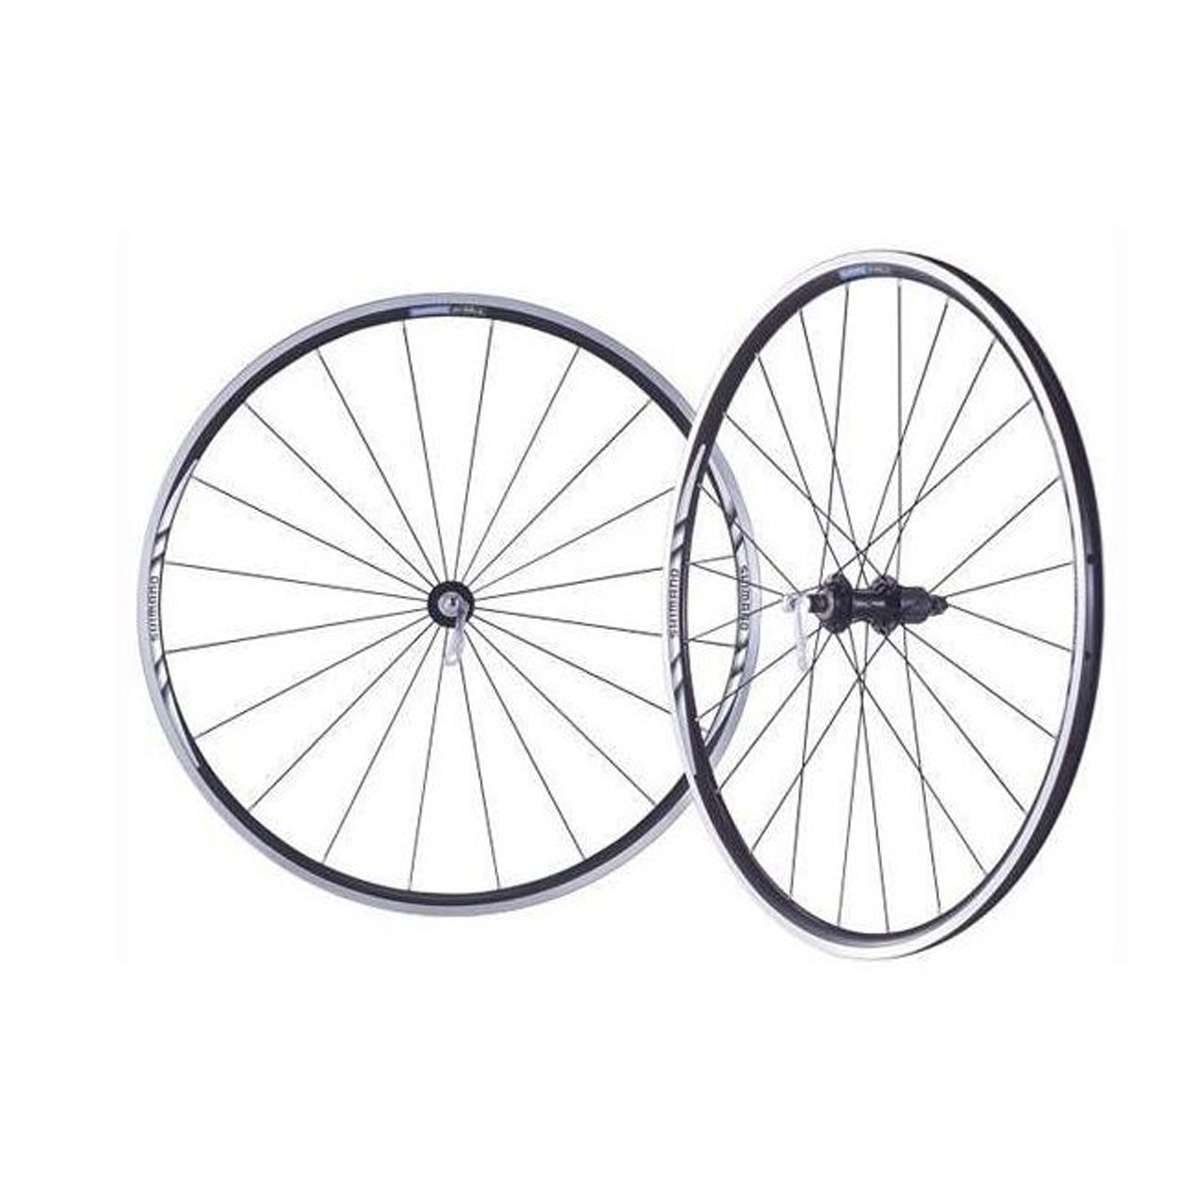 Shimano 700C Alloy Clincher Road Bike Wheelset - WH-R501 - EWHR501PEBMY by SHIMANO